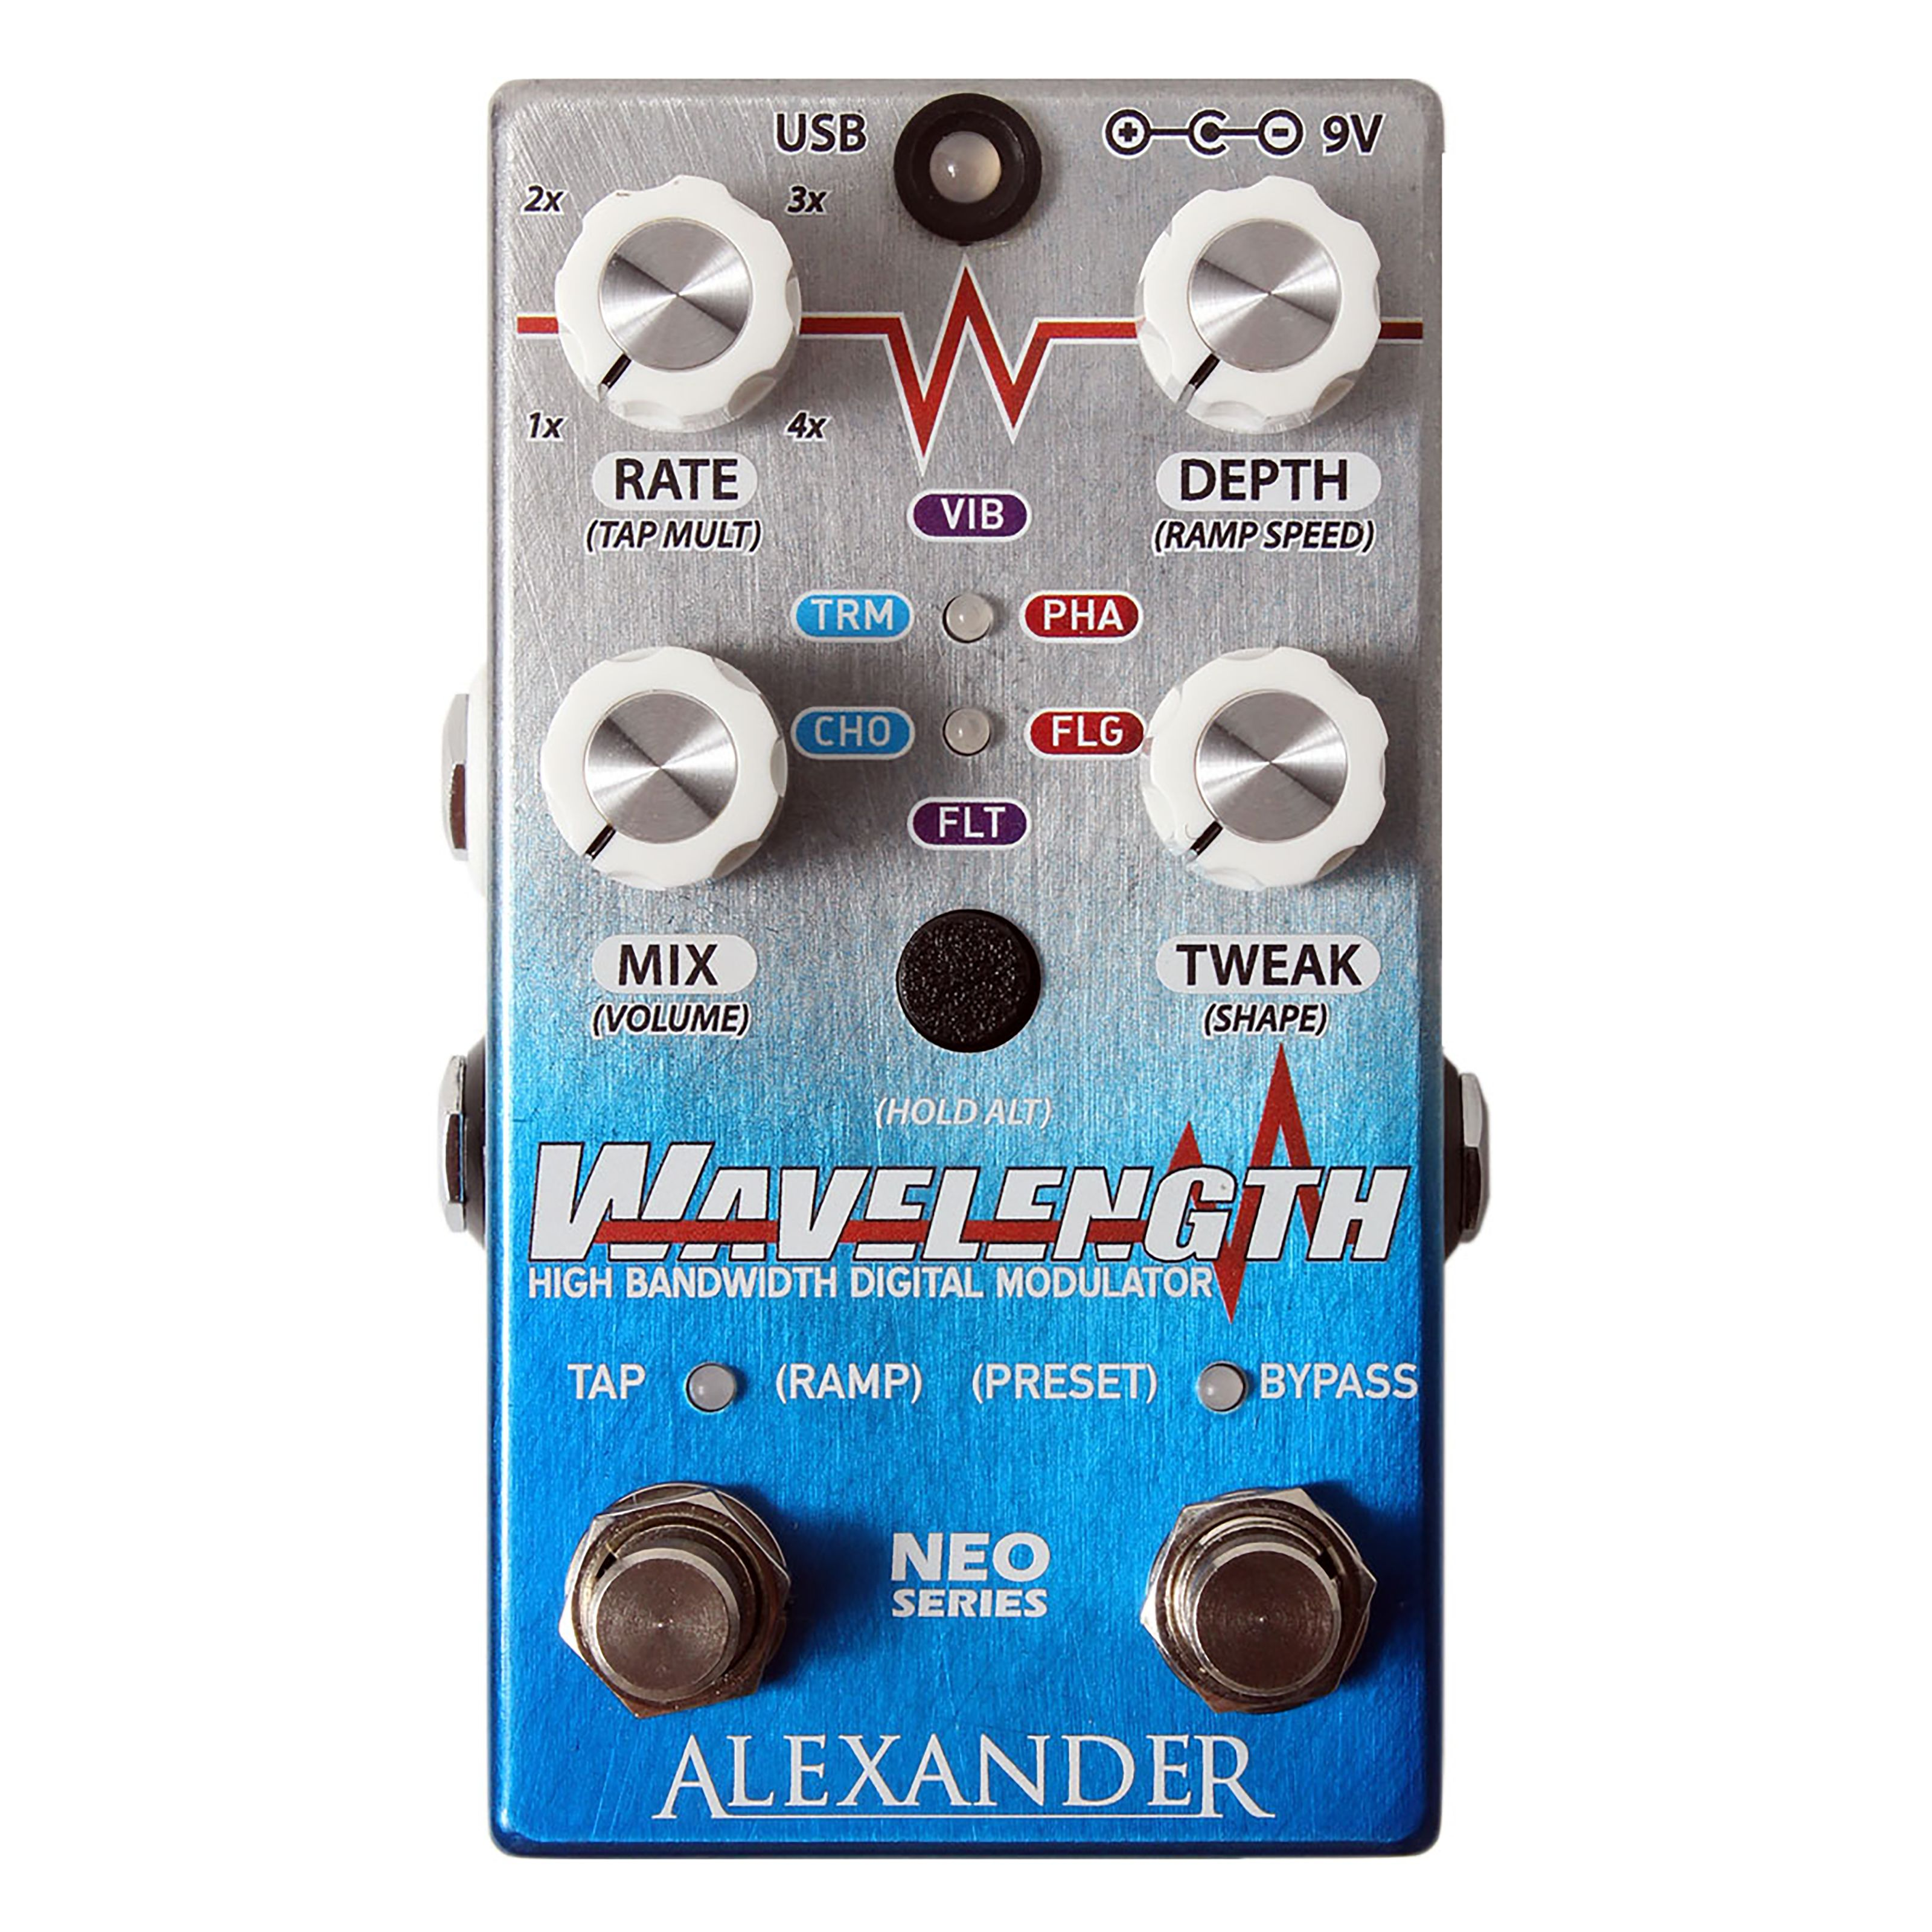 Alexander Pedals - Wavelength High Bandwidth Digital Modulator 9819